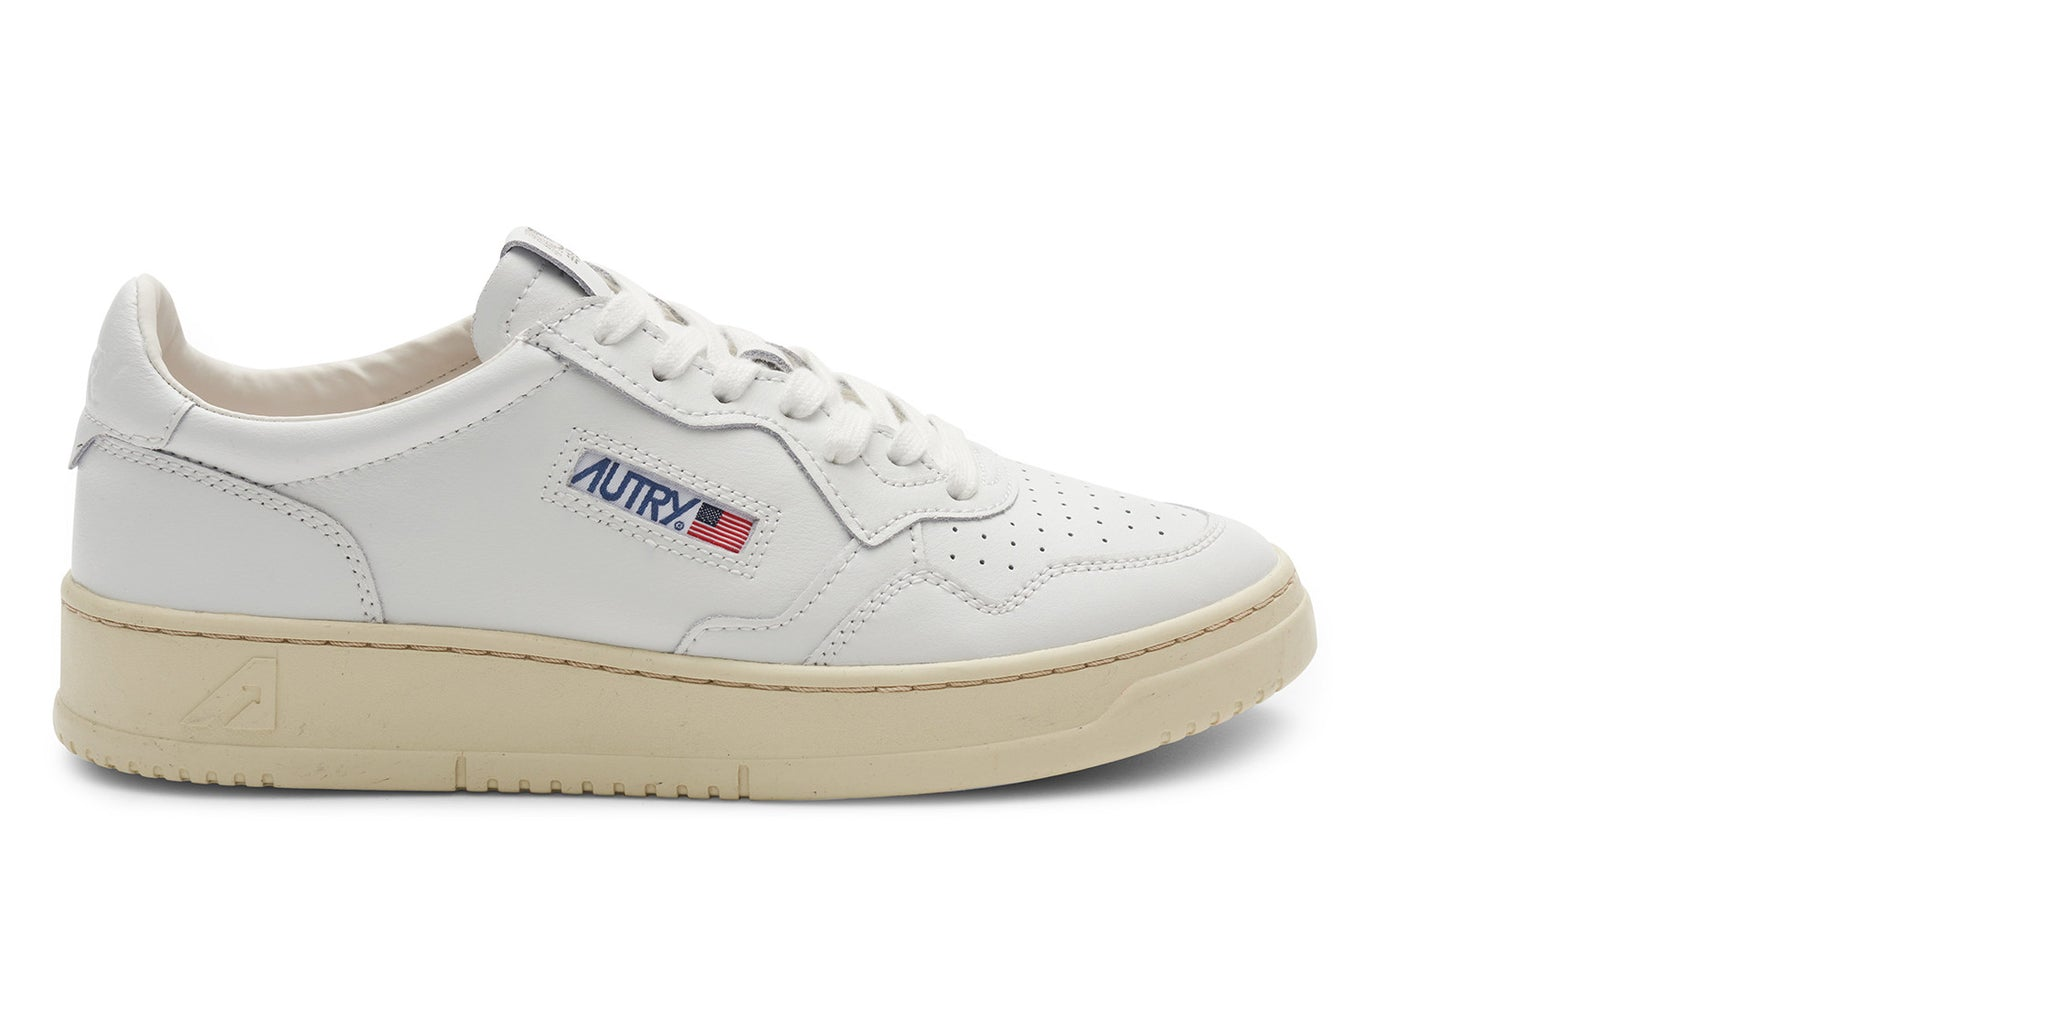 Autry Medalist Sneaker low all white